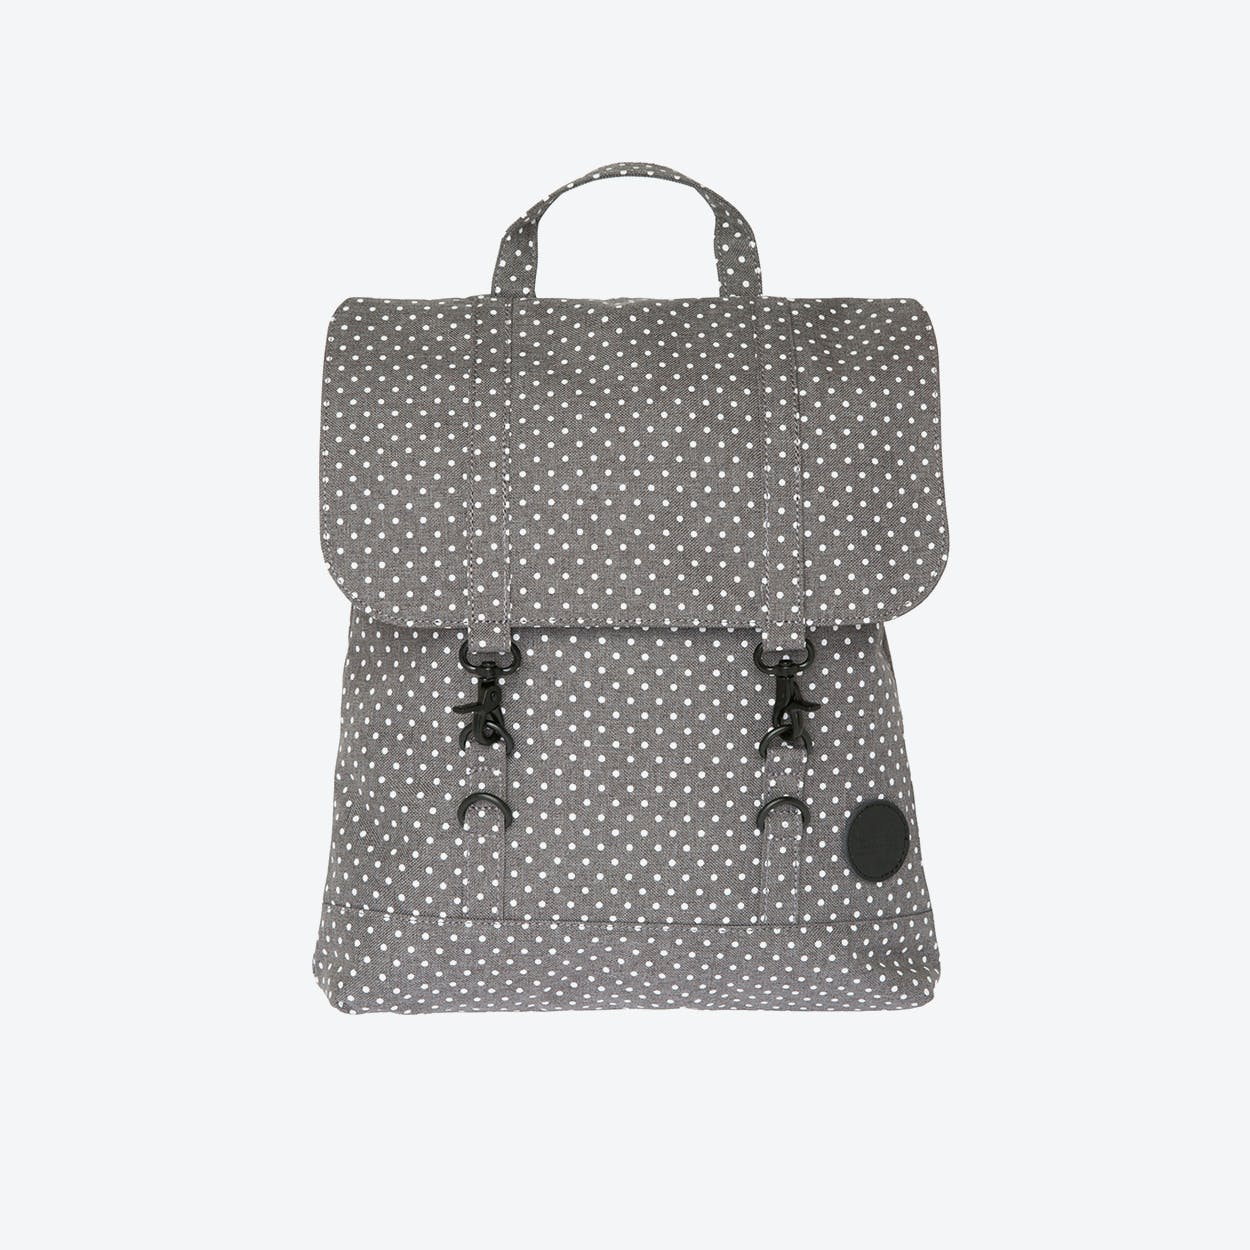 City Backpack Mini in Melange Grey & White Dot